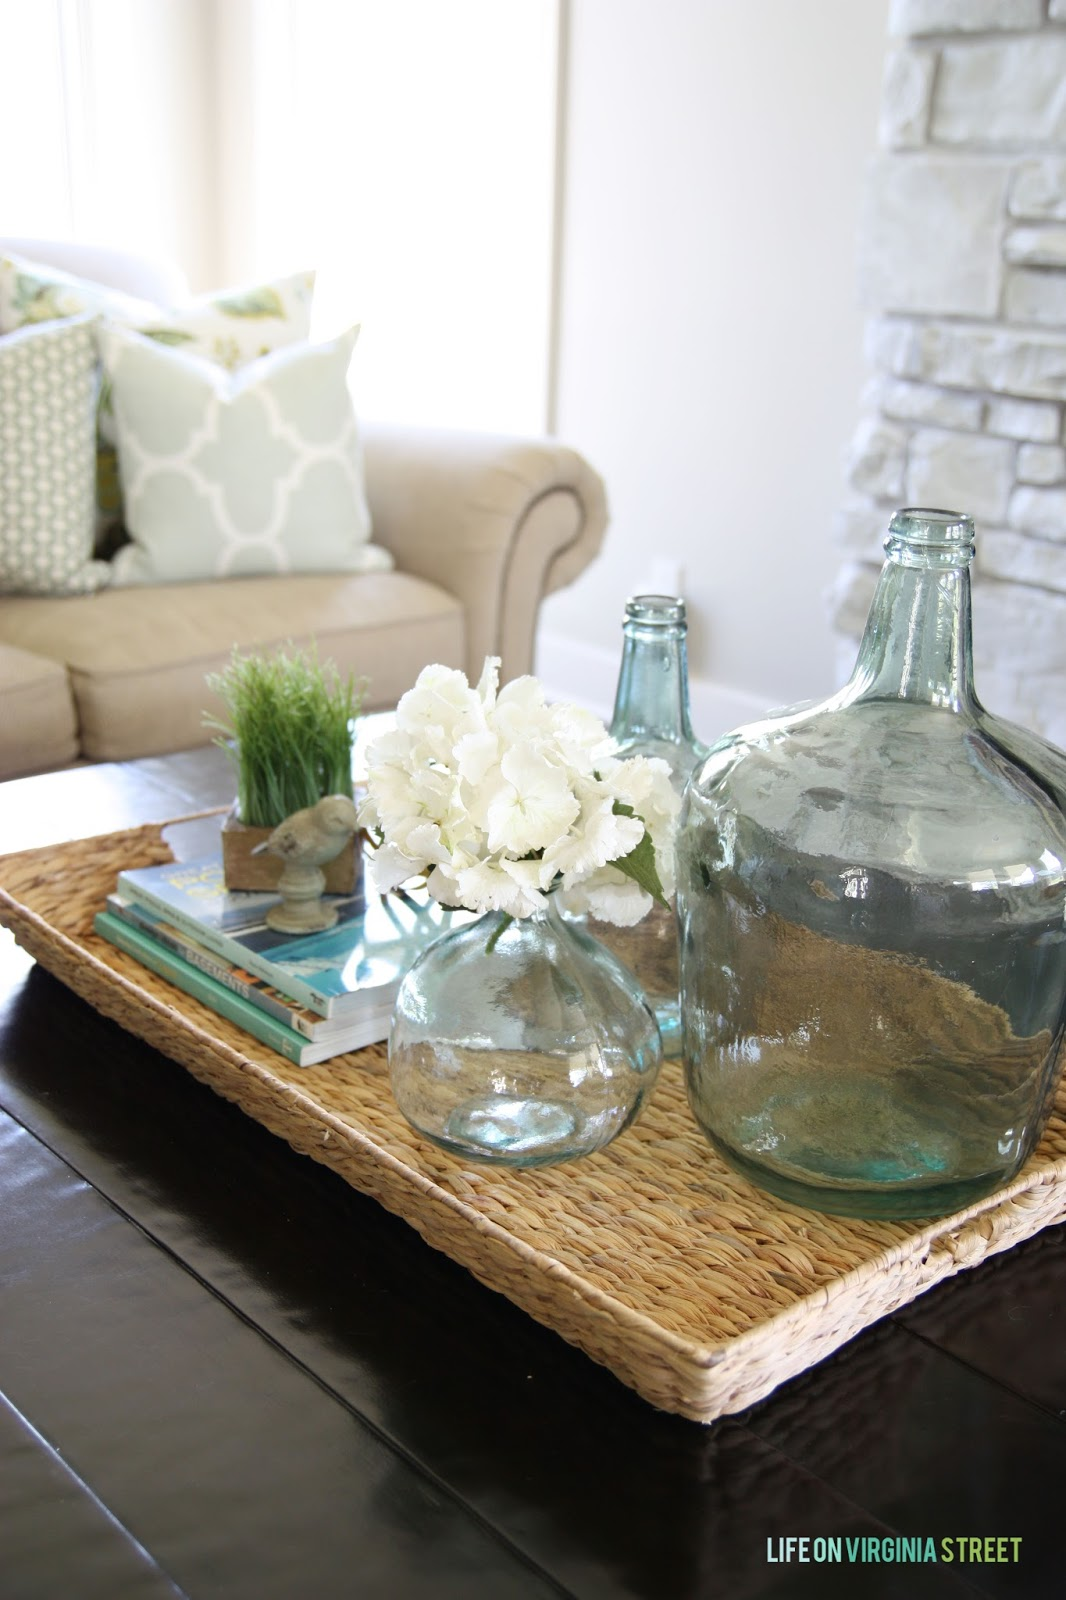 Summer decor with seagrass basket, aqua bottles and white hydrangeas